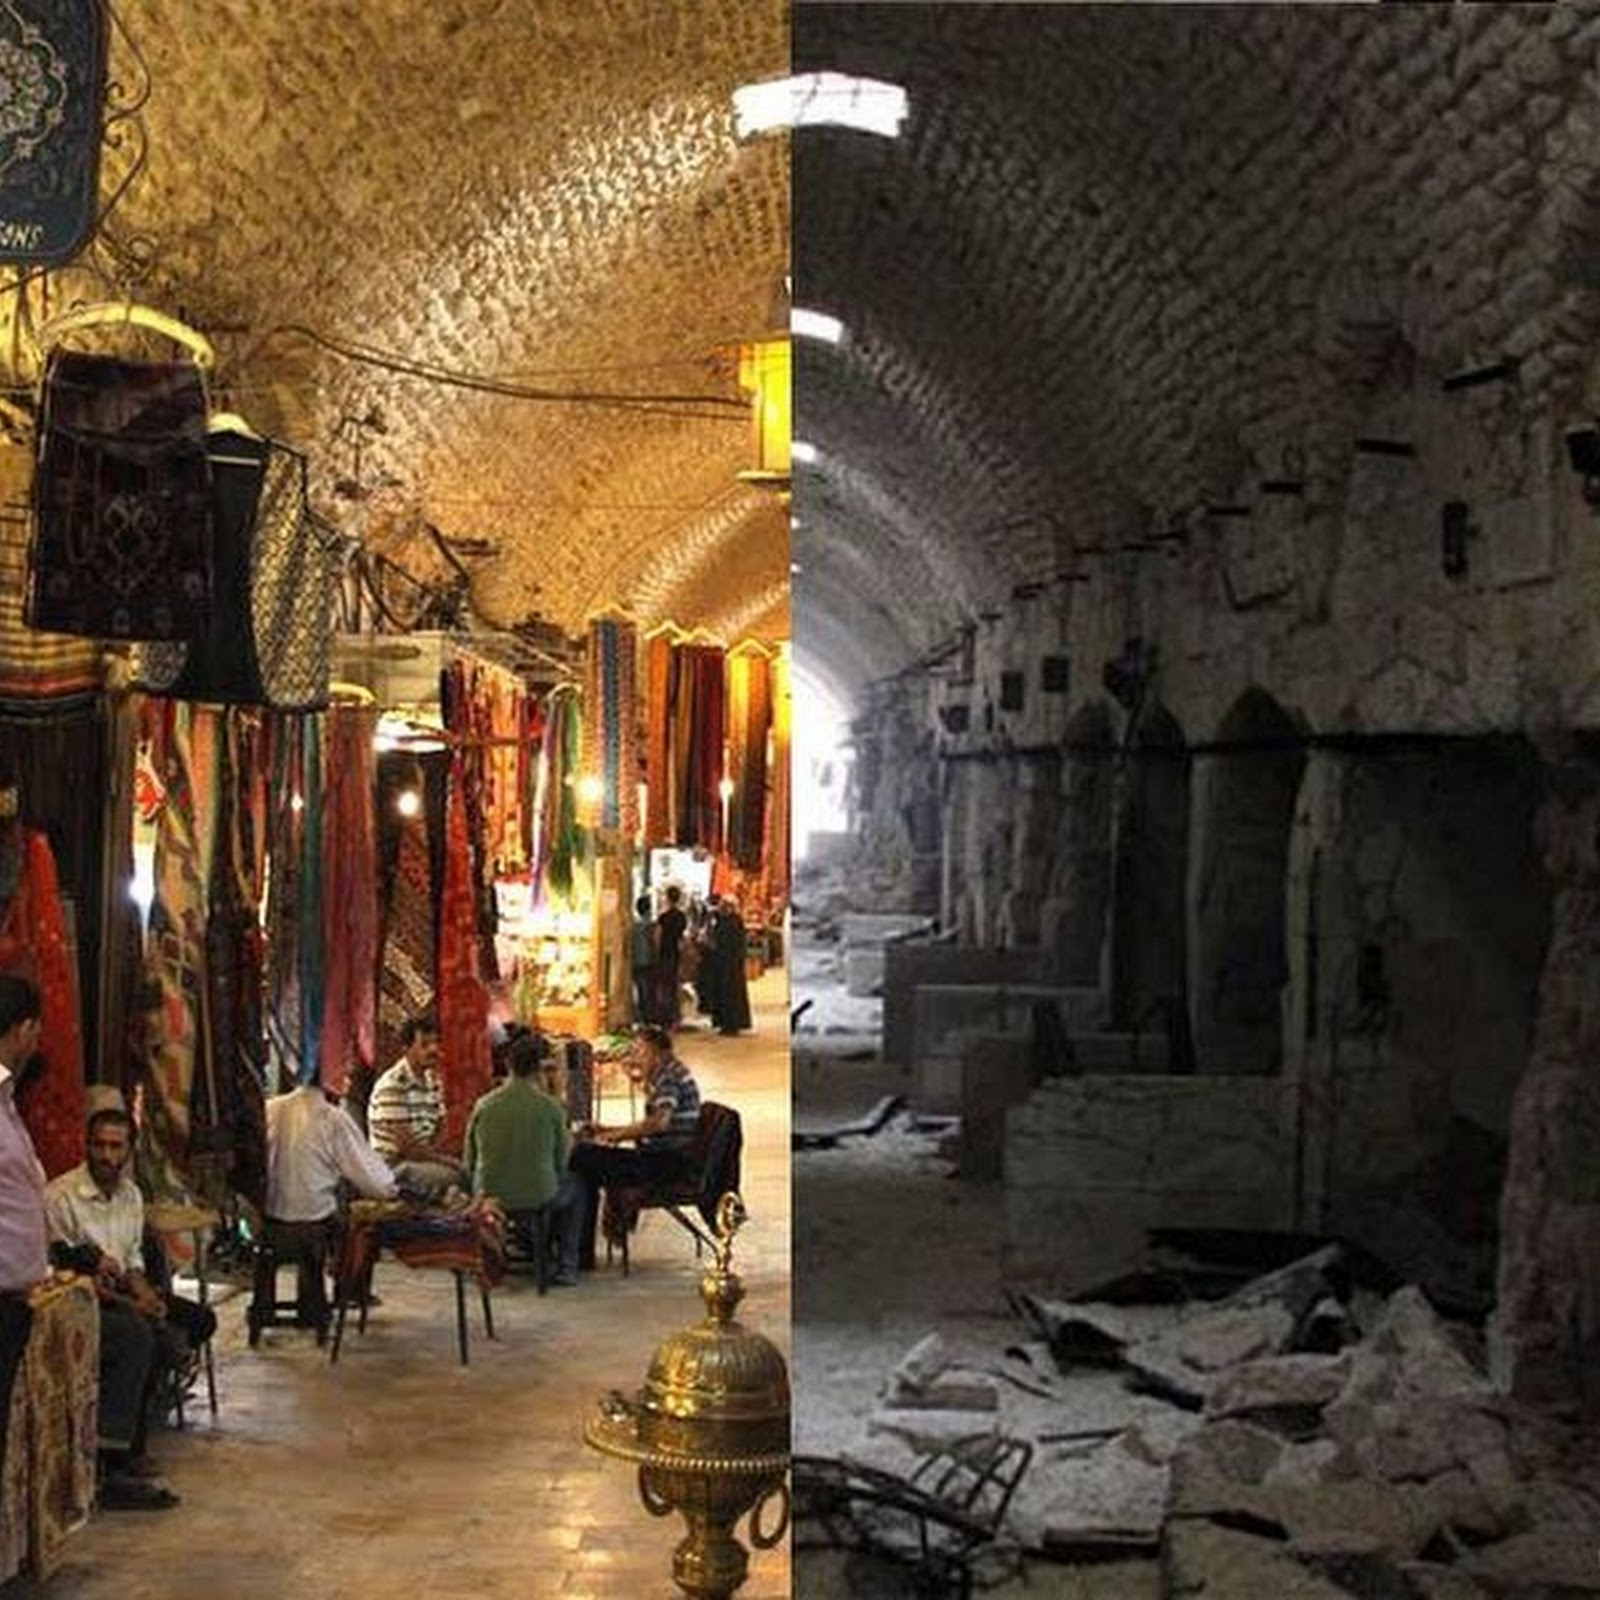 Before & After Photos of Syria Reveals War's Destructive Effects